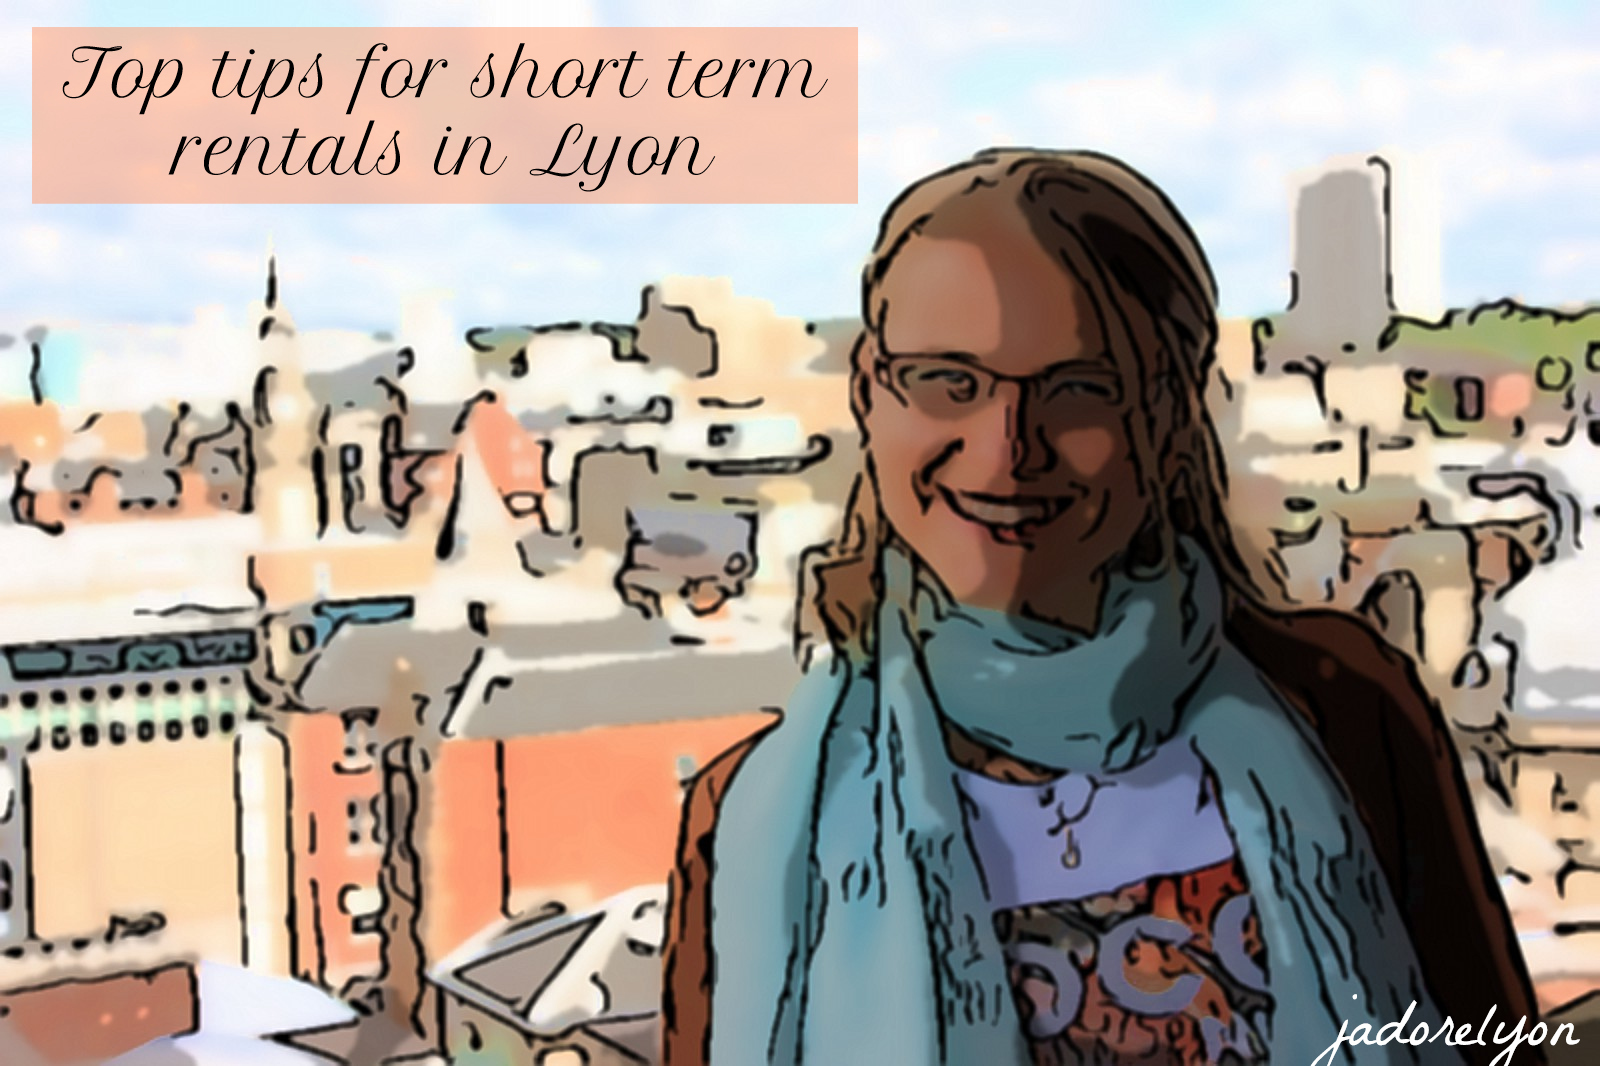 List of useful tips for short term rentals in Lyon